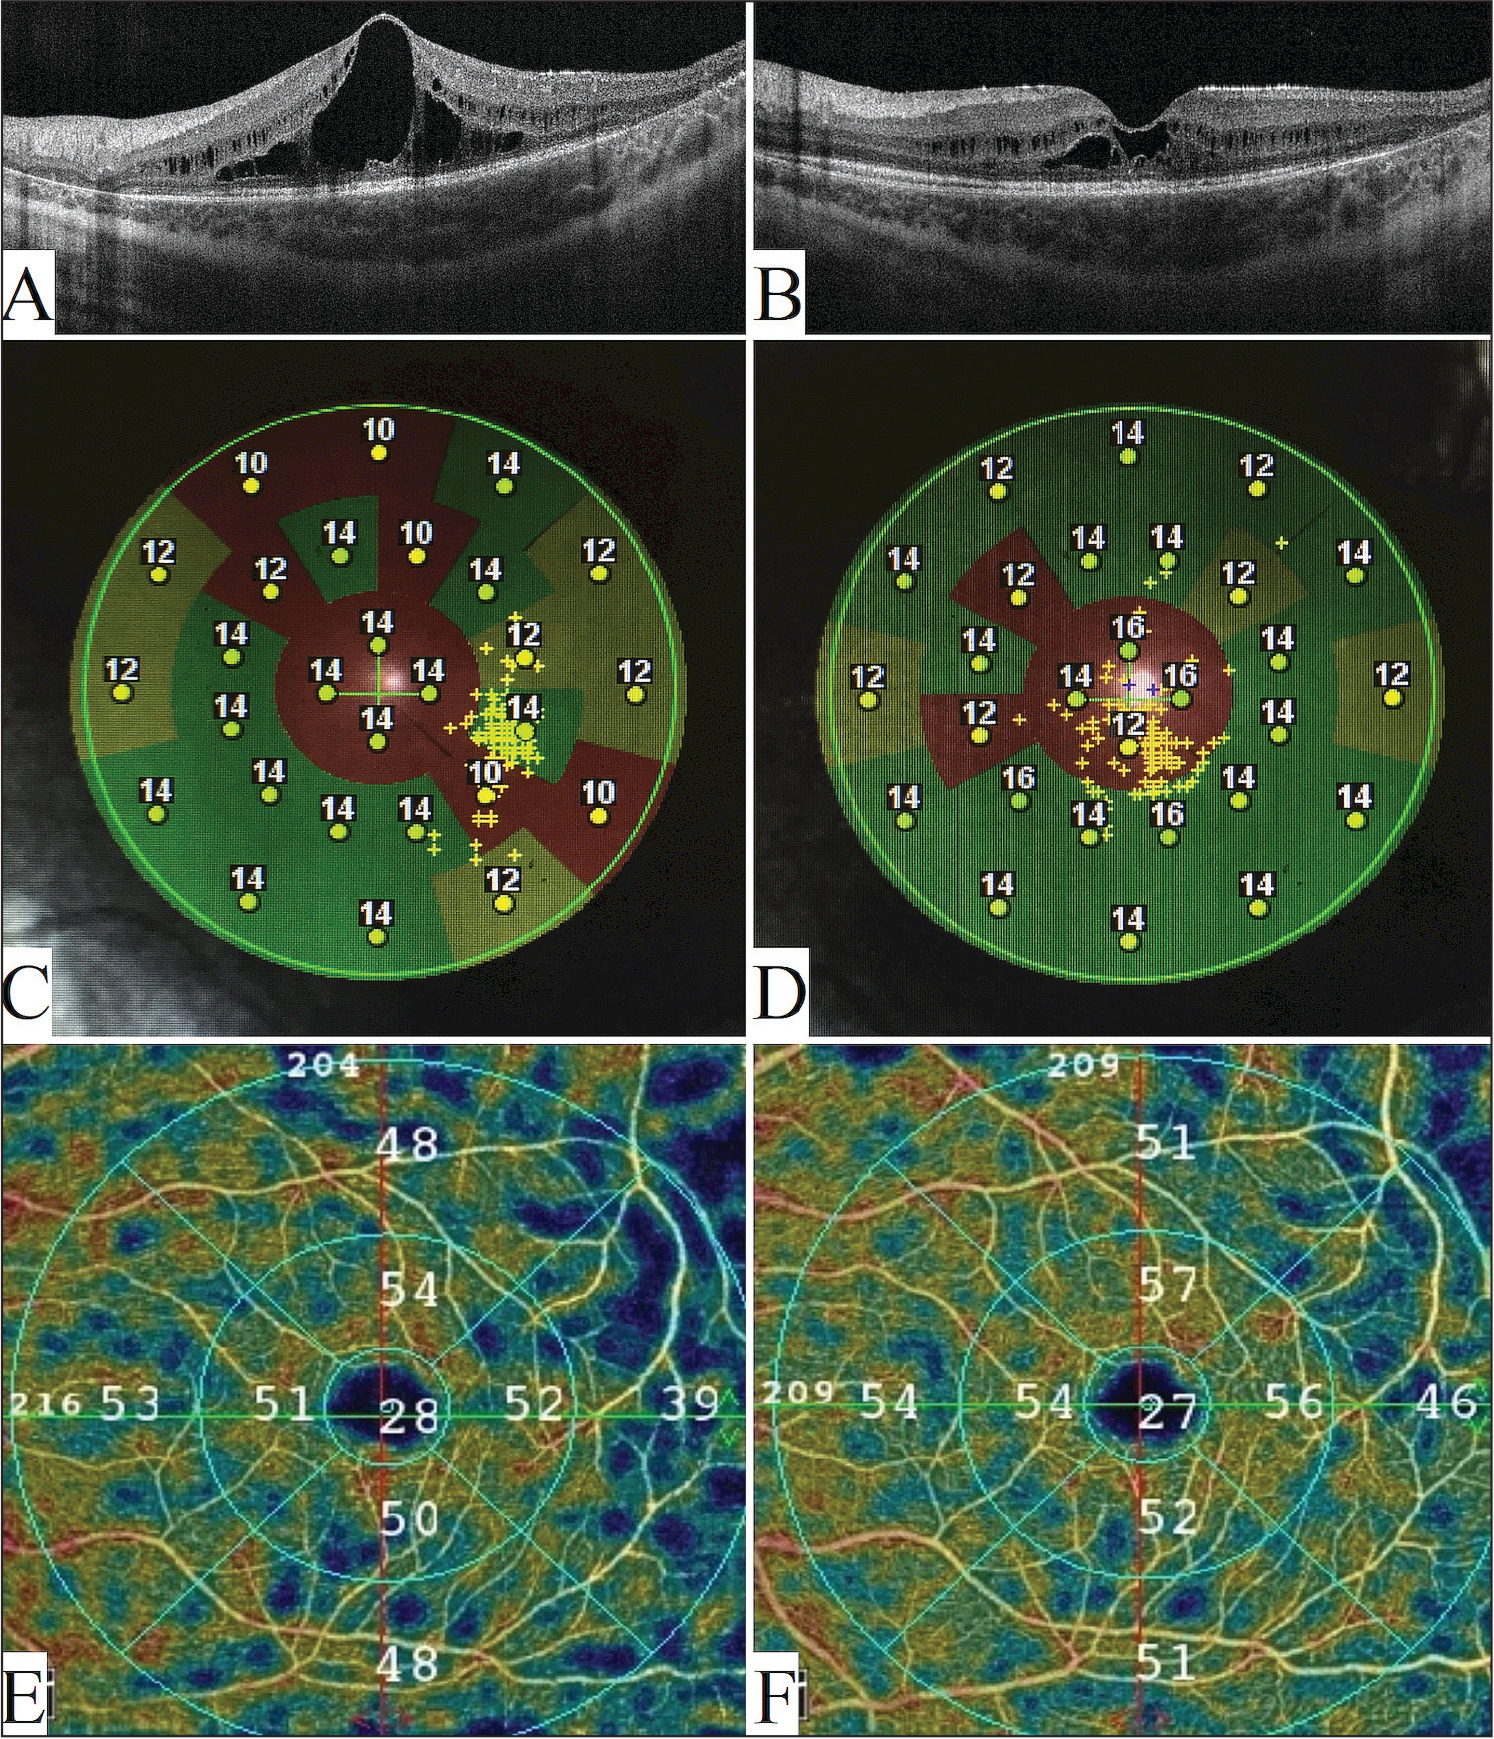 Multimodal imaging findings of the left eye of case 1 at baseline and after treatment. (A) Optical coherence tomography (OCT) at baseline showed prominent intraretinal cystic spaces with a central macular thickness (CMT) of 671 µm. (B) One month after three intravitreal bevacizumab injections, there was marked improved in intraretinal cycstic spaces and CMT improved to 336 µm. (C) Macular microperimetry at baseline showed decreased sensitivity in the central, superior, and temporal macular areas with a mean sensitivity of 12.8 dB. (D) One month after three intravitreal bevacizumab injections, there was improvement in the macular sensitivity with a mean of 13.8 dB. (E) OCT angiography at baseline showed areas of capillary drop-out, especially in the temporal macula. (F) One month after three injections, there was improvement in macular vascular density measurements.